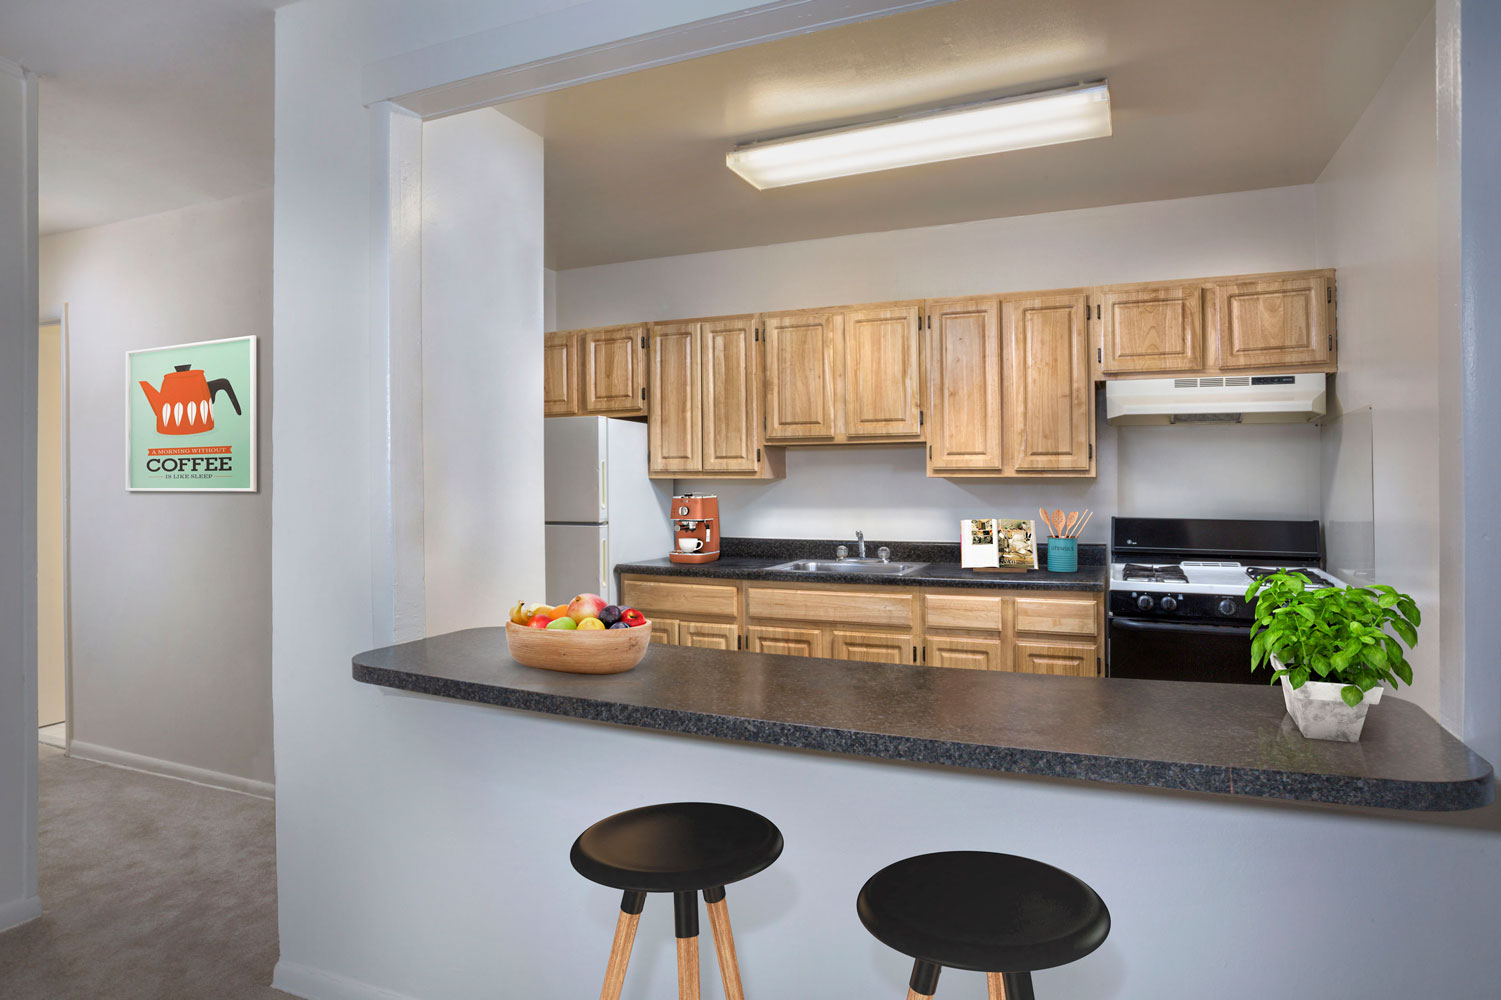 Kitchen with breakfast bar at Riverside Plaza Apartments in Oxon Hill, MD